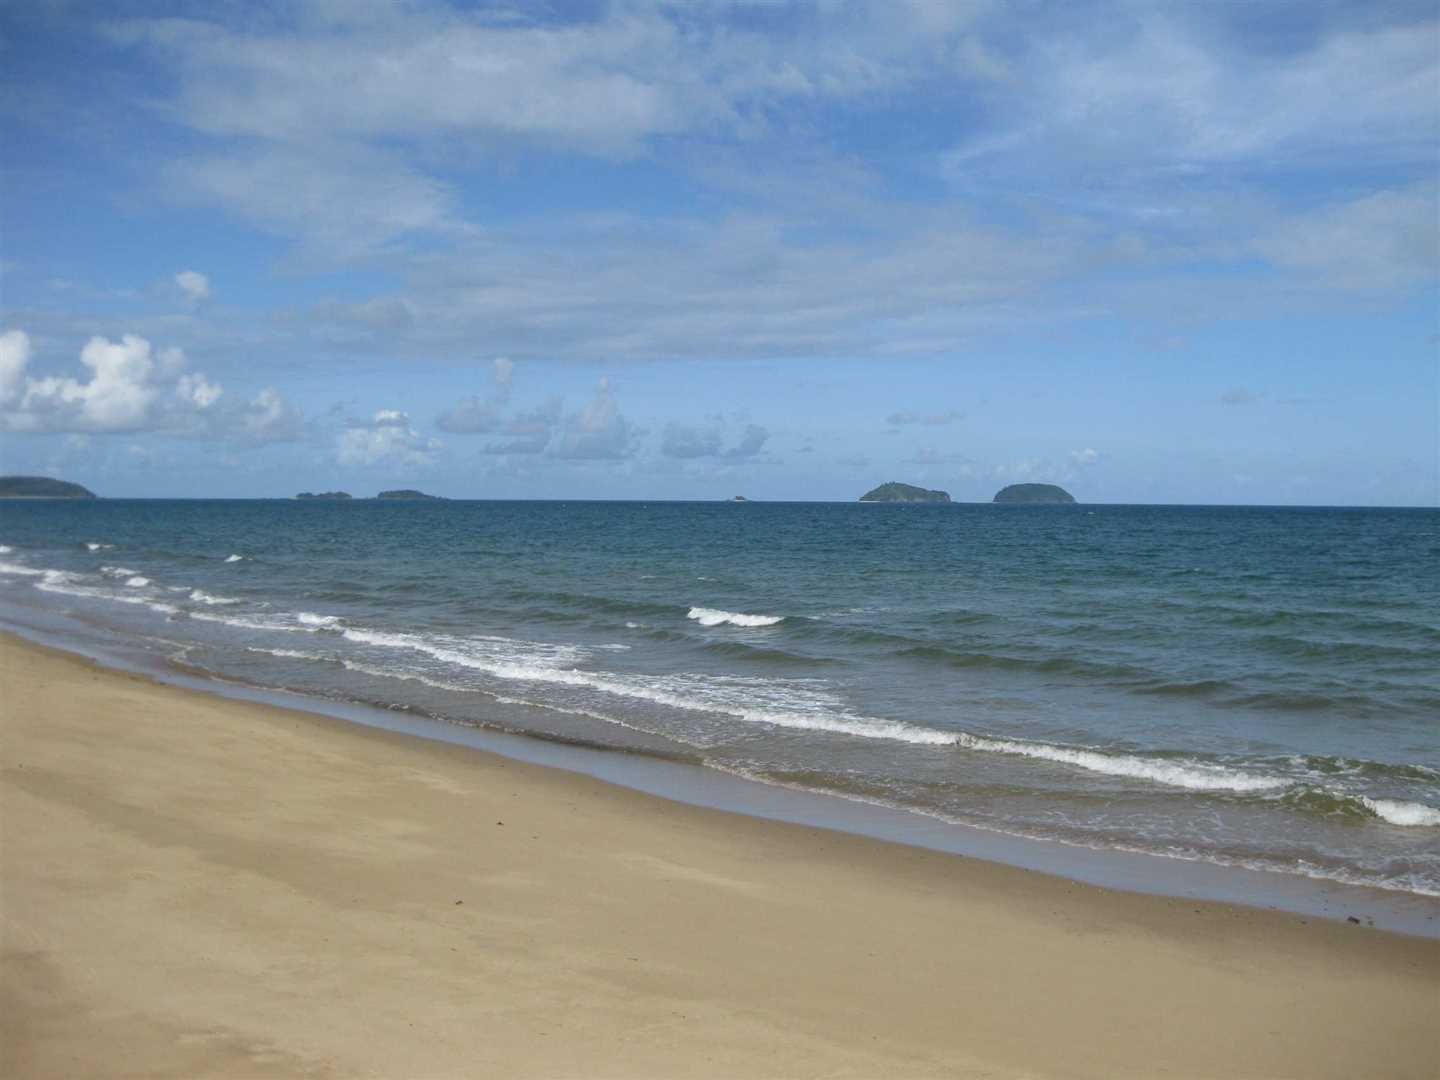 View of part of Cowley Beach and some nearby Islands